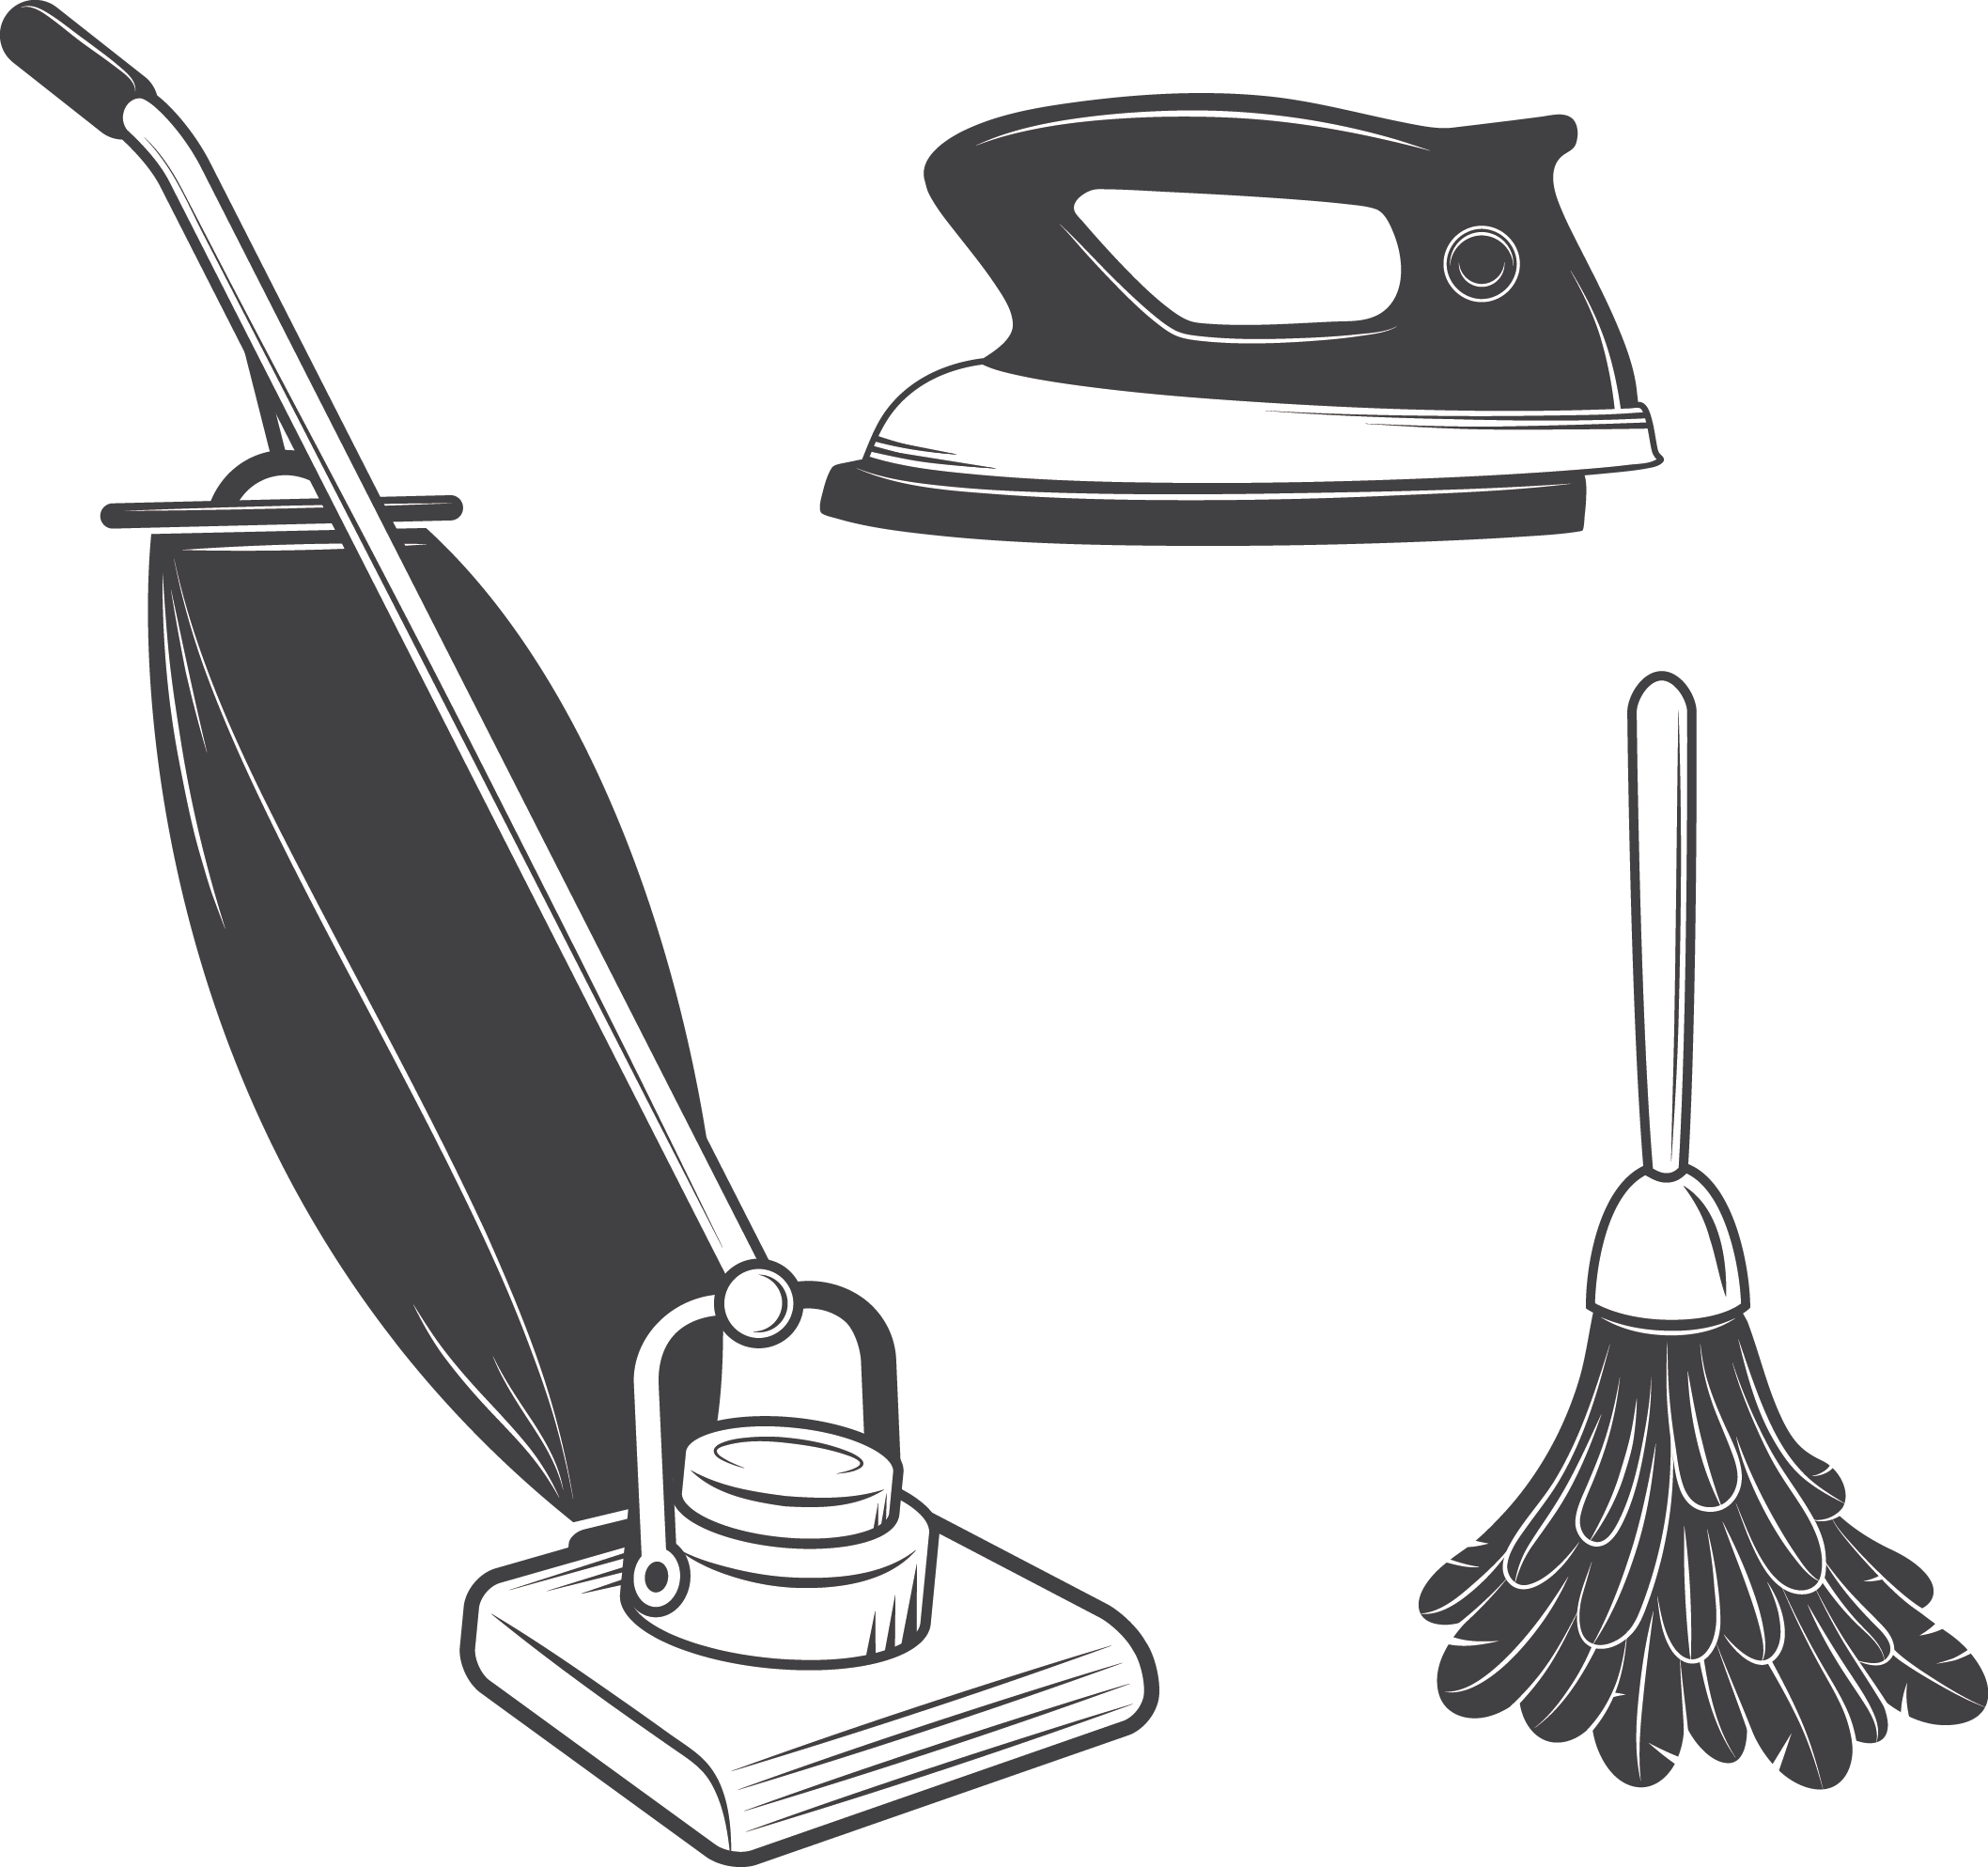 Vacuum cleaner cleaning mop. Clean clipart housekeeping supply